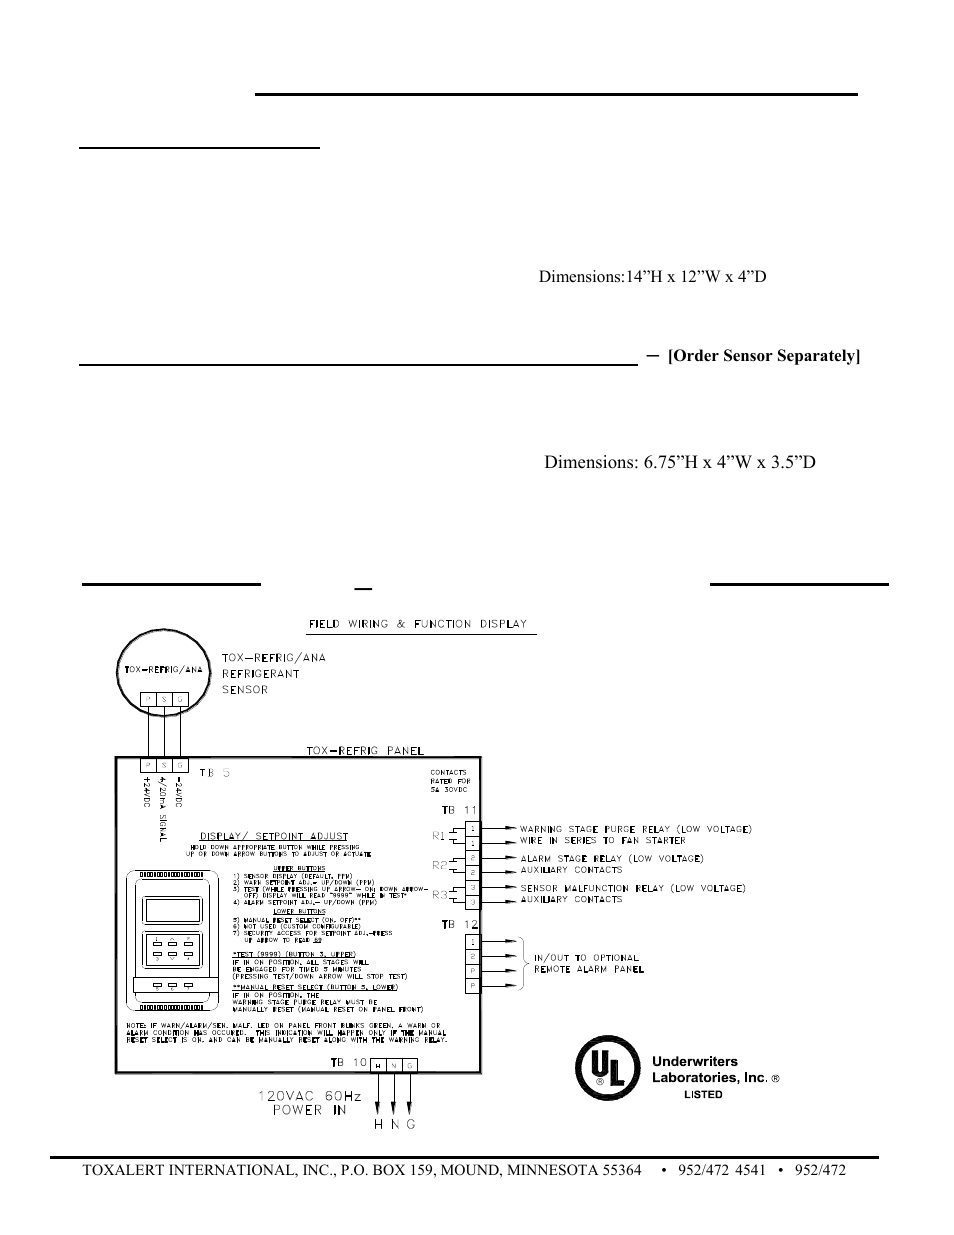 Tox Refrig Monitor Toxalert User Manual Page 4 Votage Bacnet Wiring